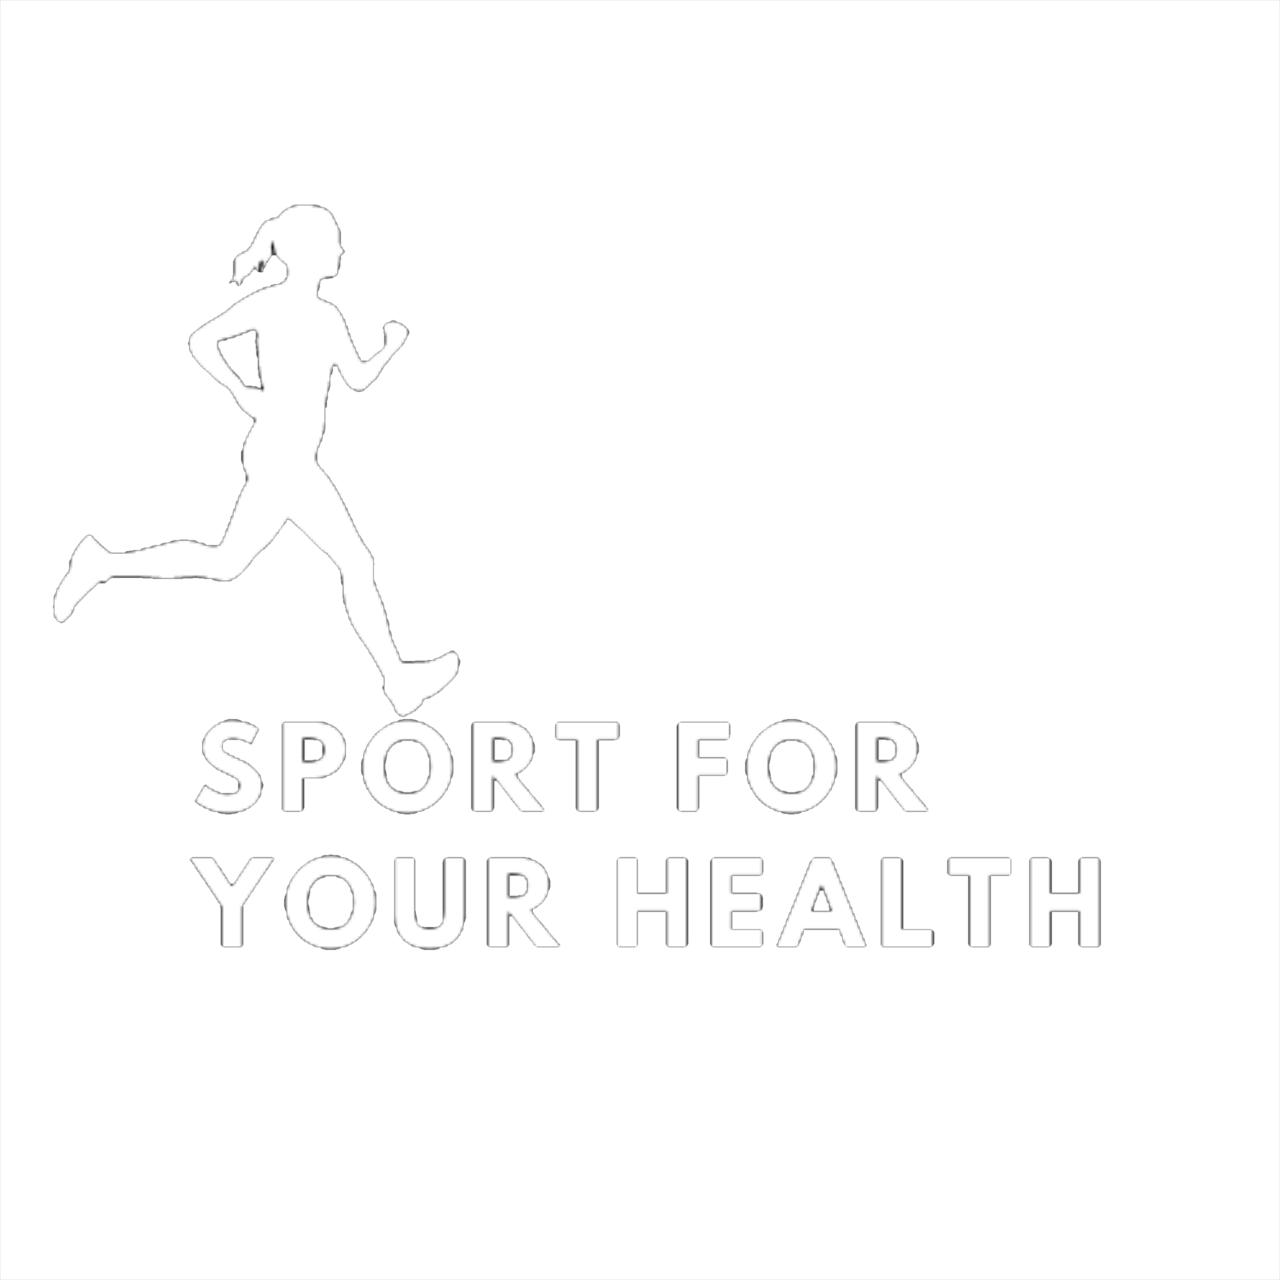 SPORT FOR YOUR HEALTH